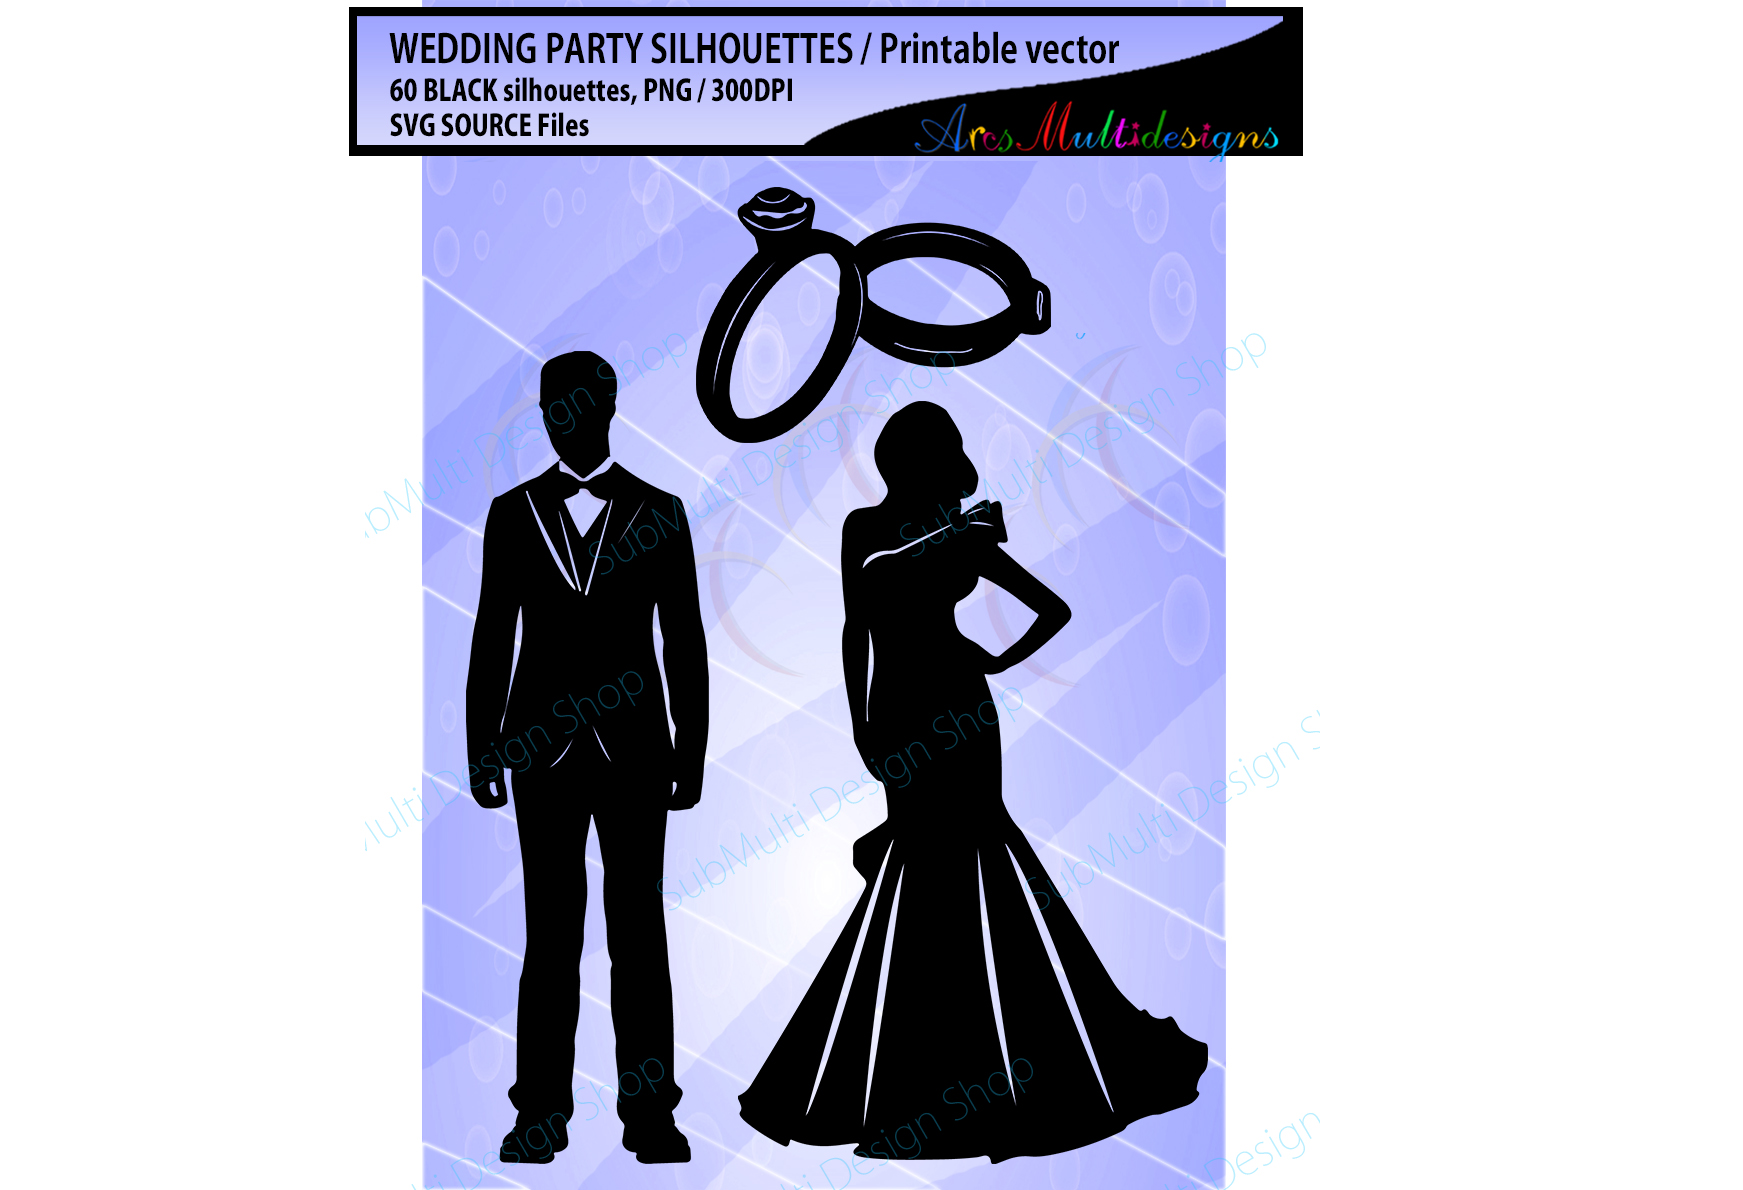 Wedding silhouette SVG / Wedding party silhouette 60 image example image 3